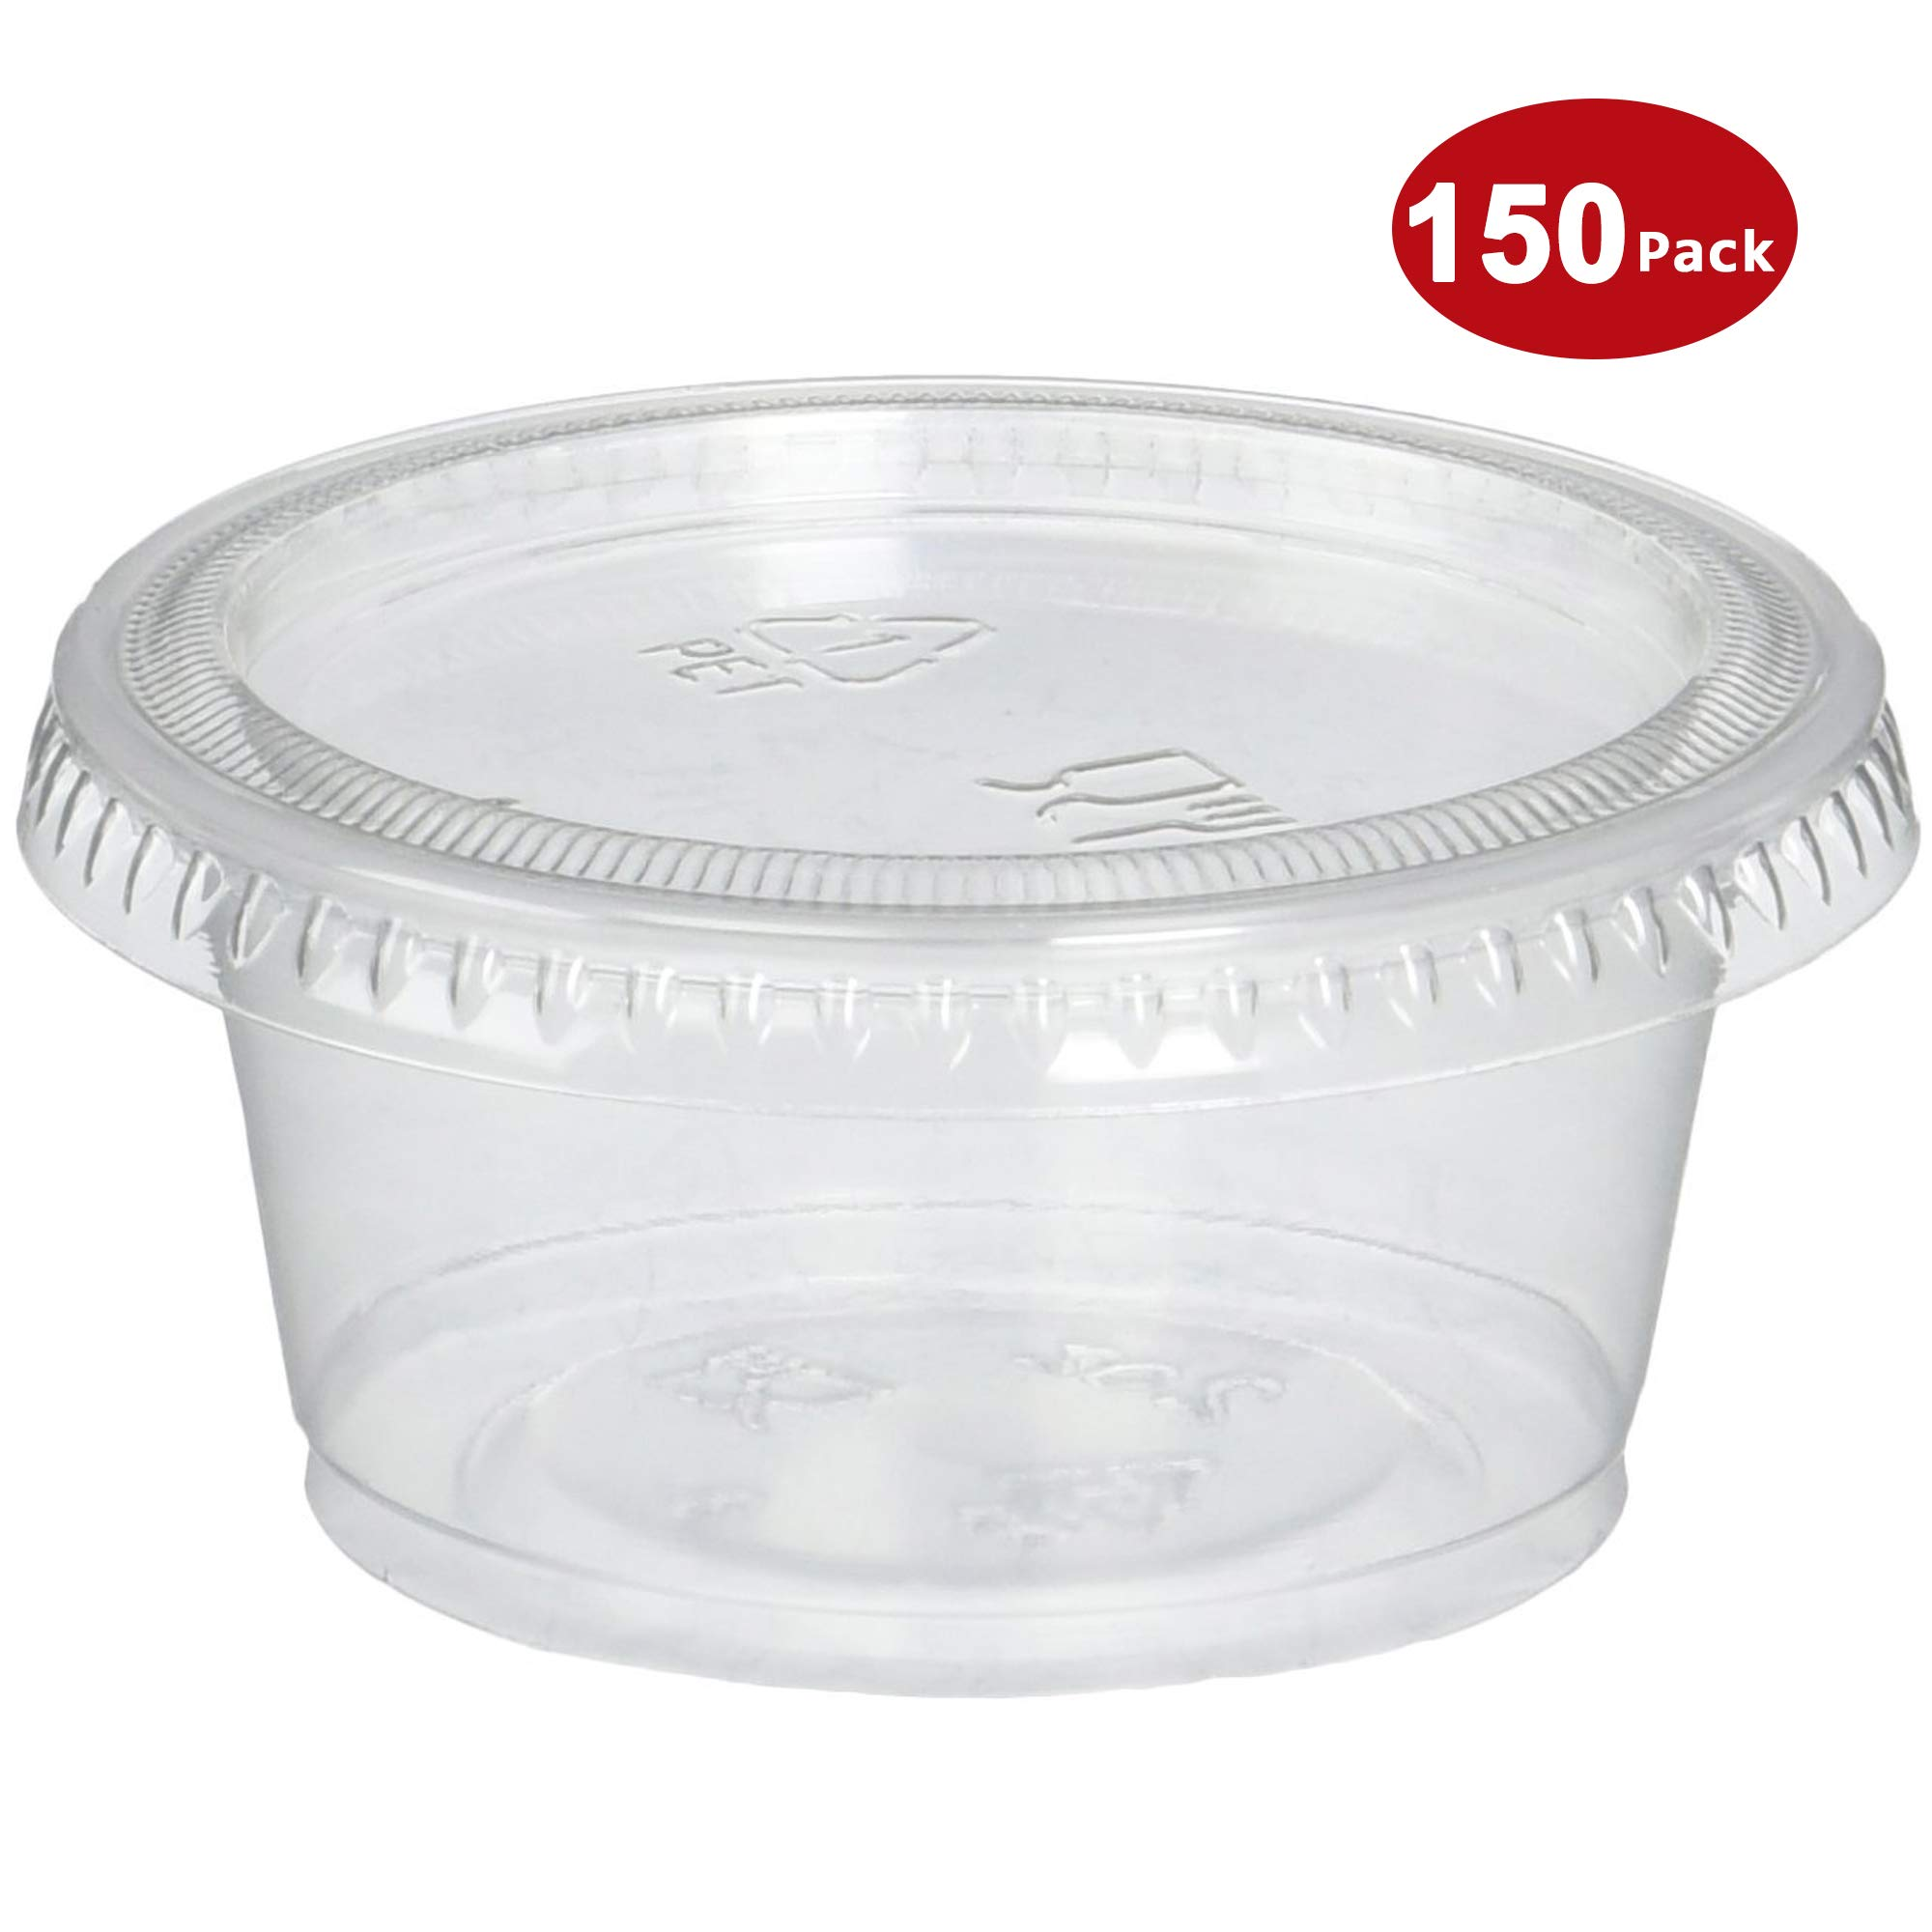 Plastic Portion Cups with Lids 2 oz. Pack of 150 Jello Shot Cup Salad Dressing Containers for Sauce Condiment Snack Souffle and Salsa, BPA Free - by DuraHome by DuraHome